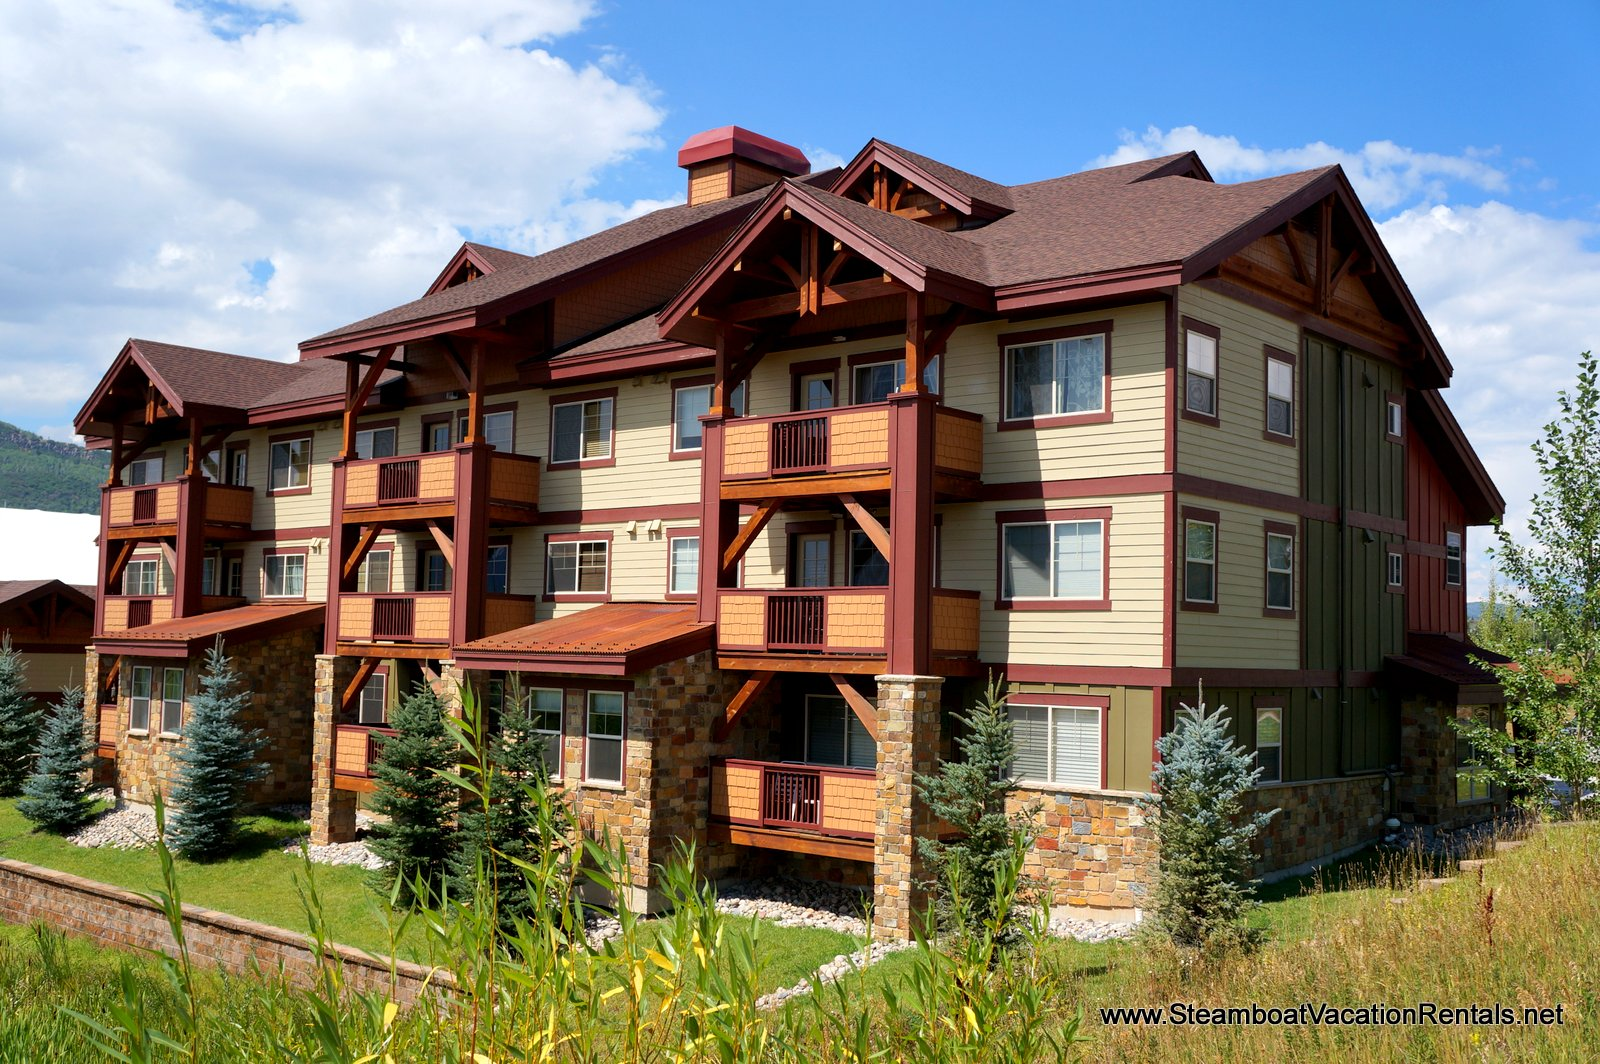 Steamboat vacation rentals lodging for your family ski trip for Steamboat springs cabins for rent